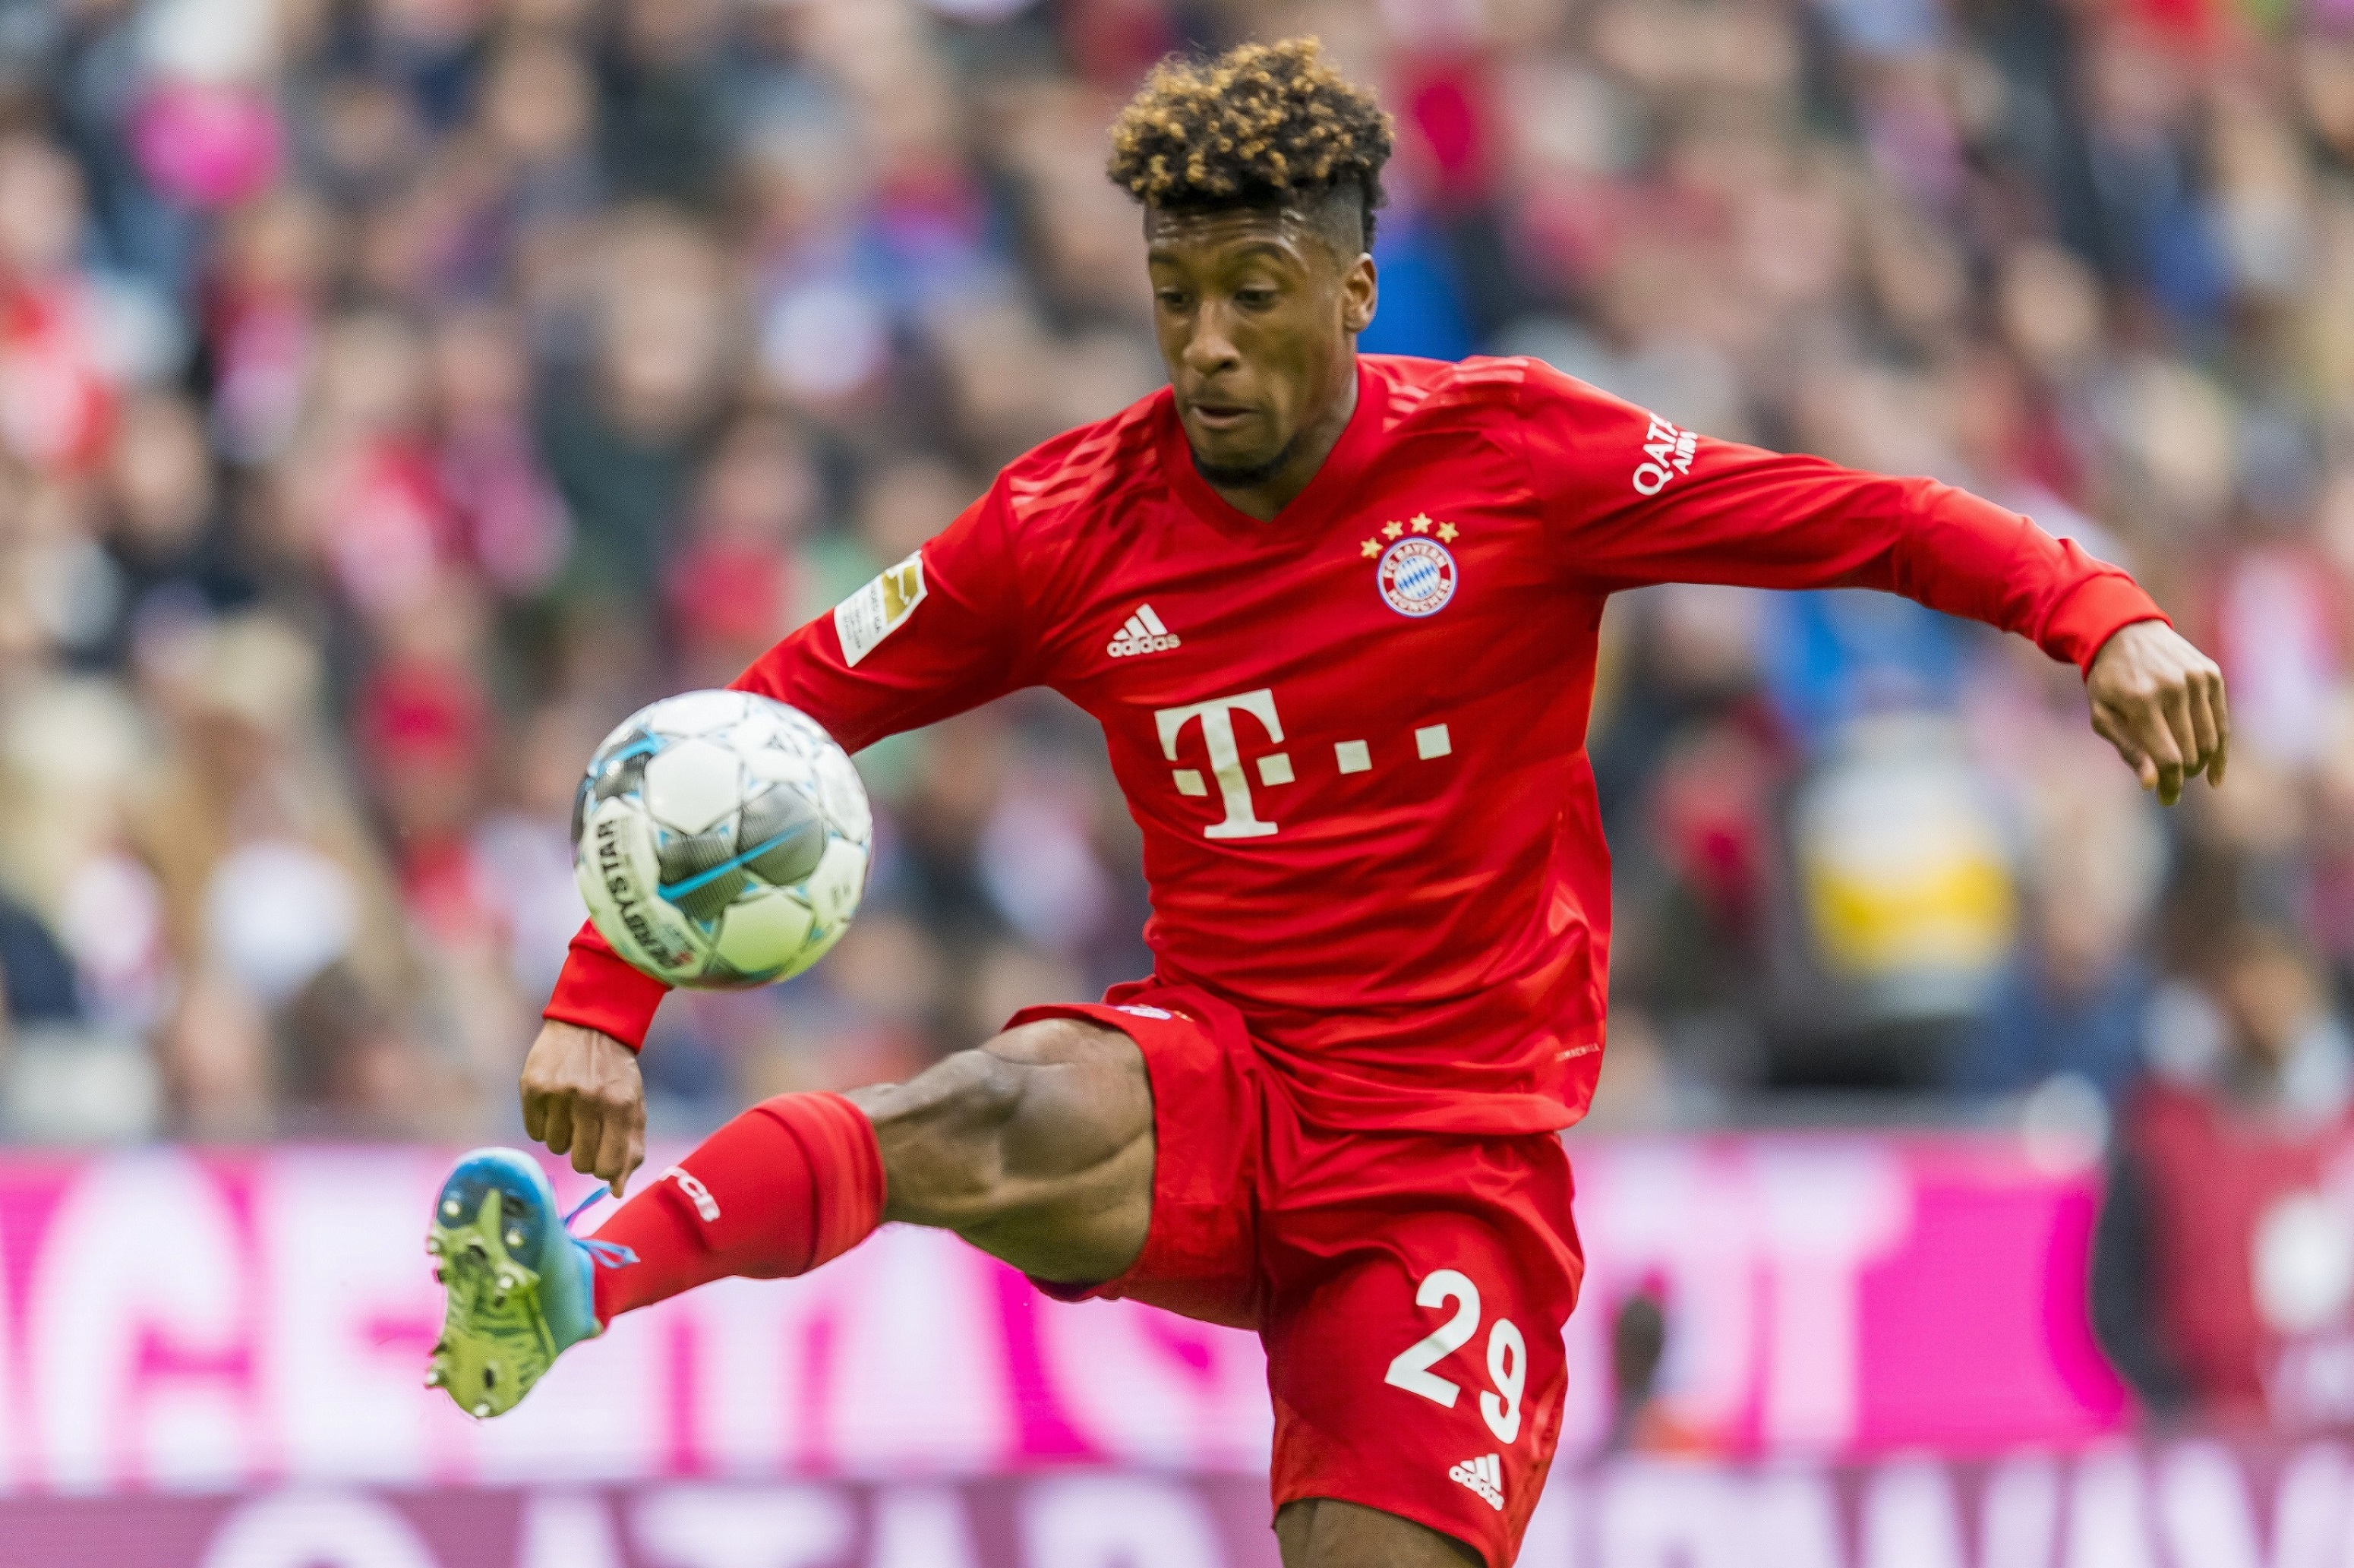 Football - Etranger - Bundesliga : Fortuna Düsseldorf-Bayern Munich en direct